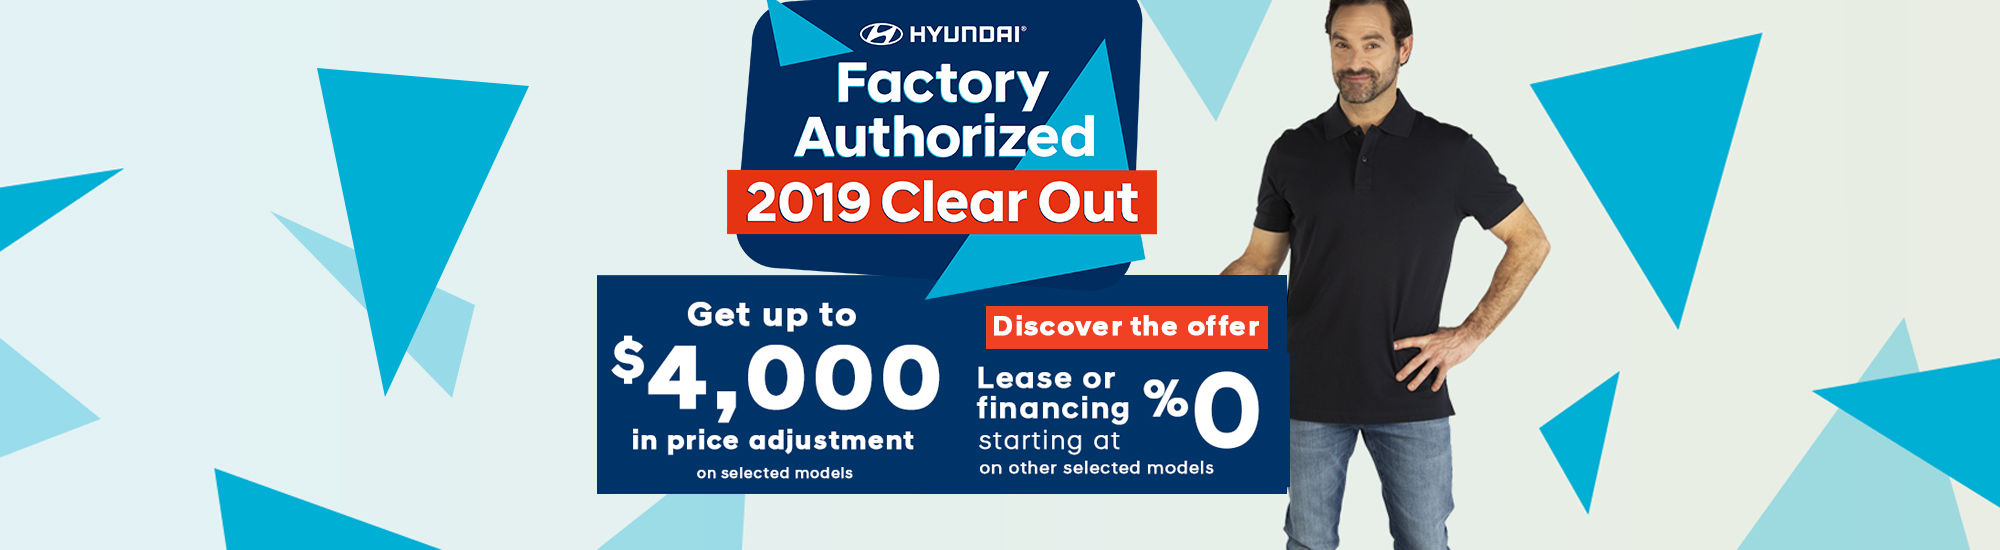 Hyundai Factory Authorized 2019 clear out